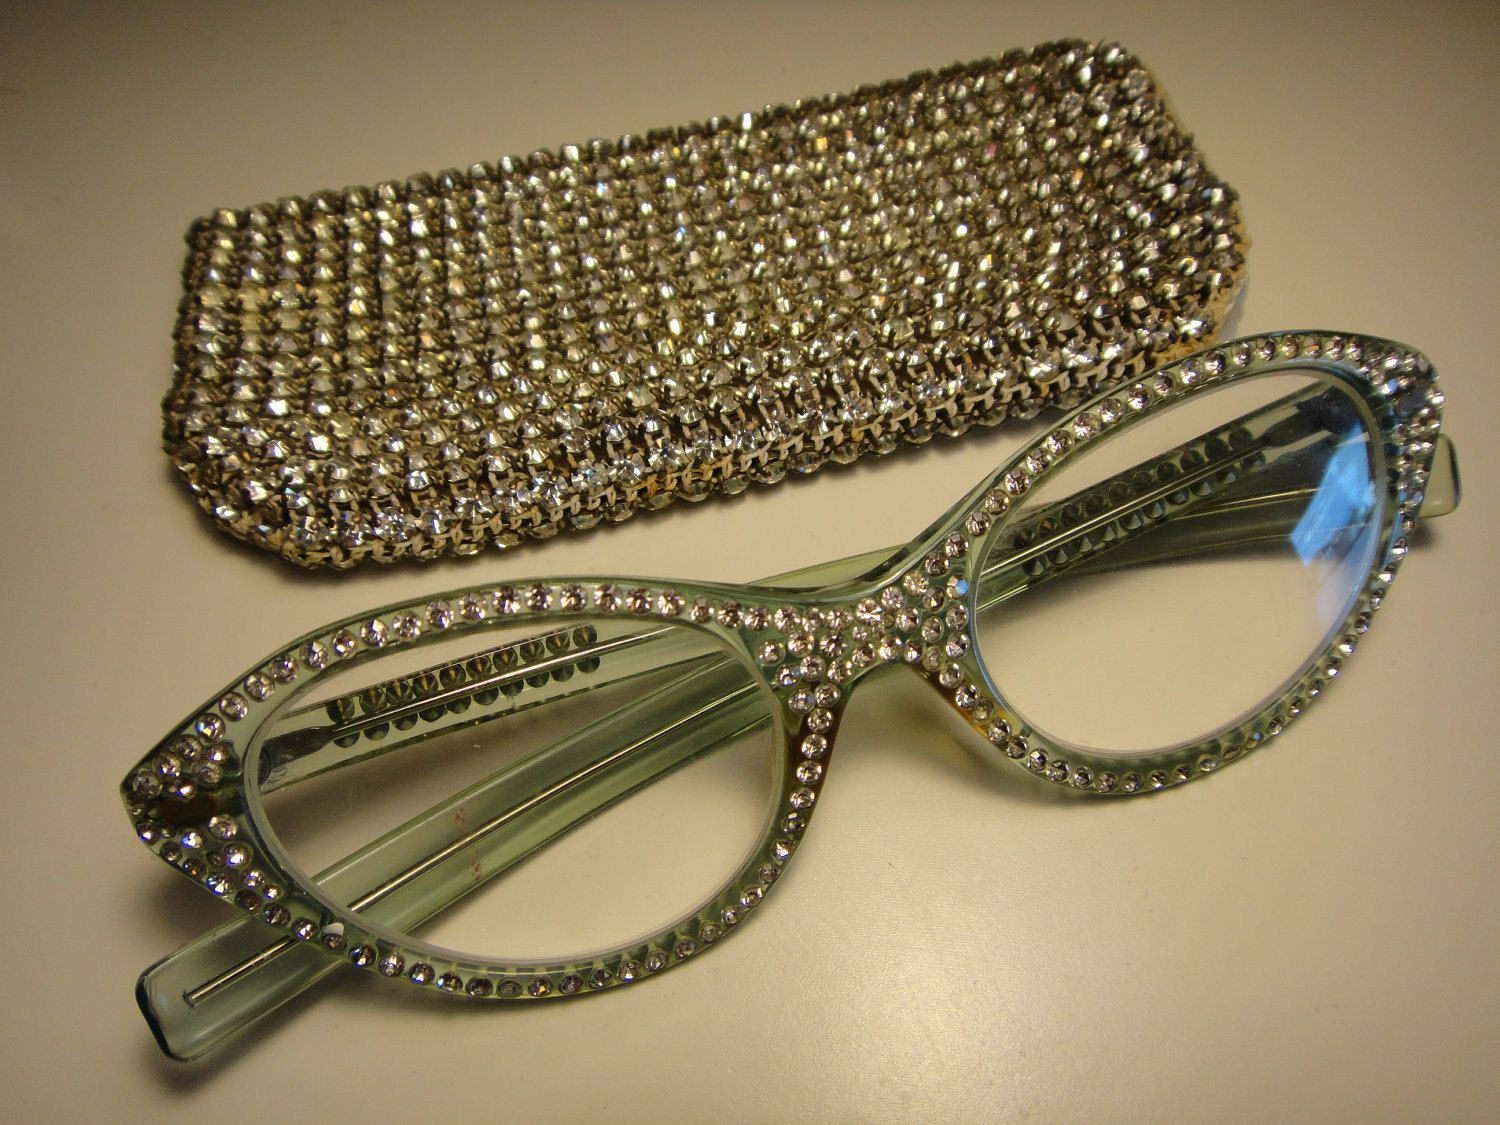 307ba7da5b6 Image result for eyeglasses with bling